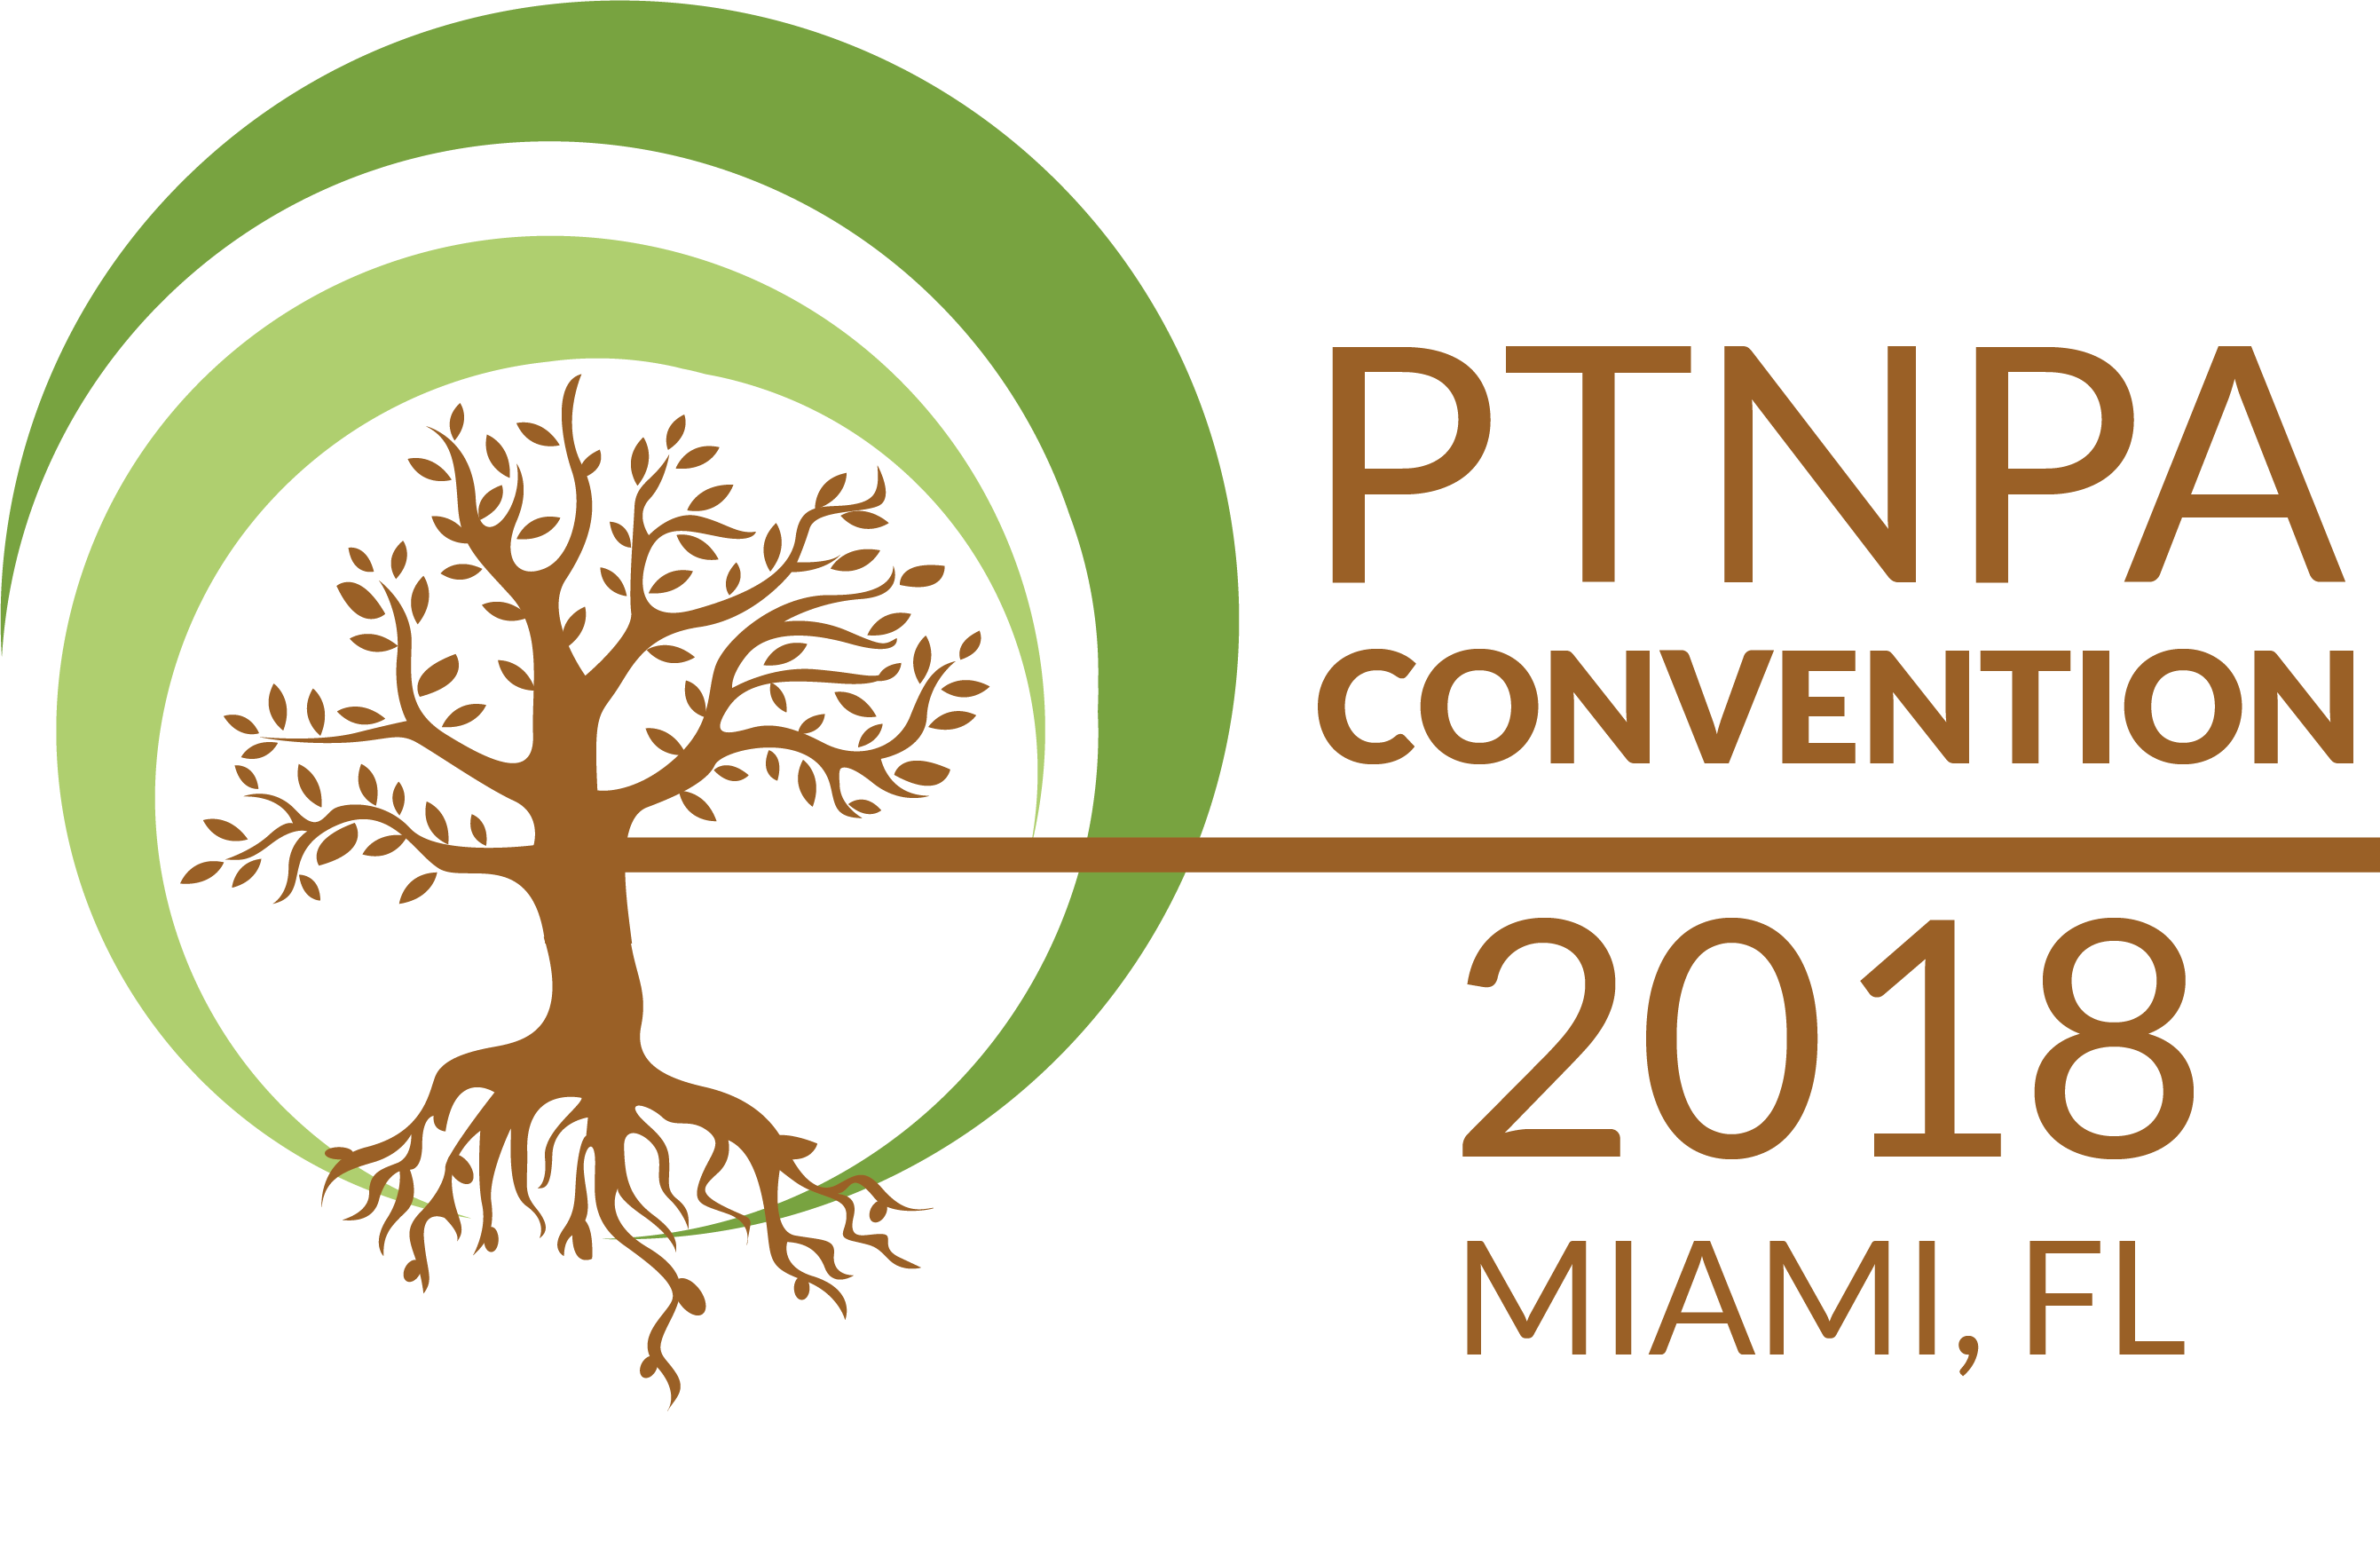 PTNPA Convention 2018